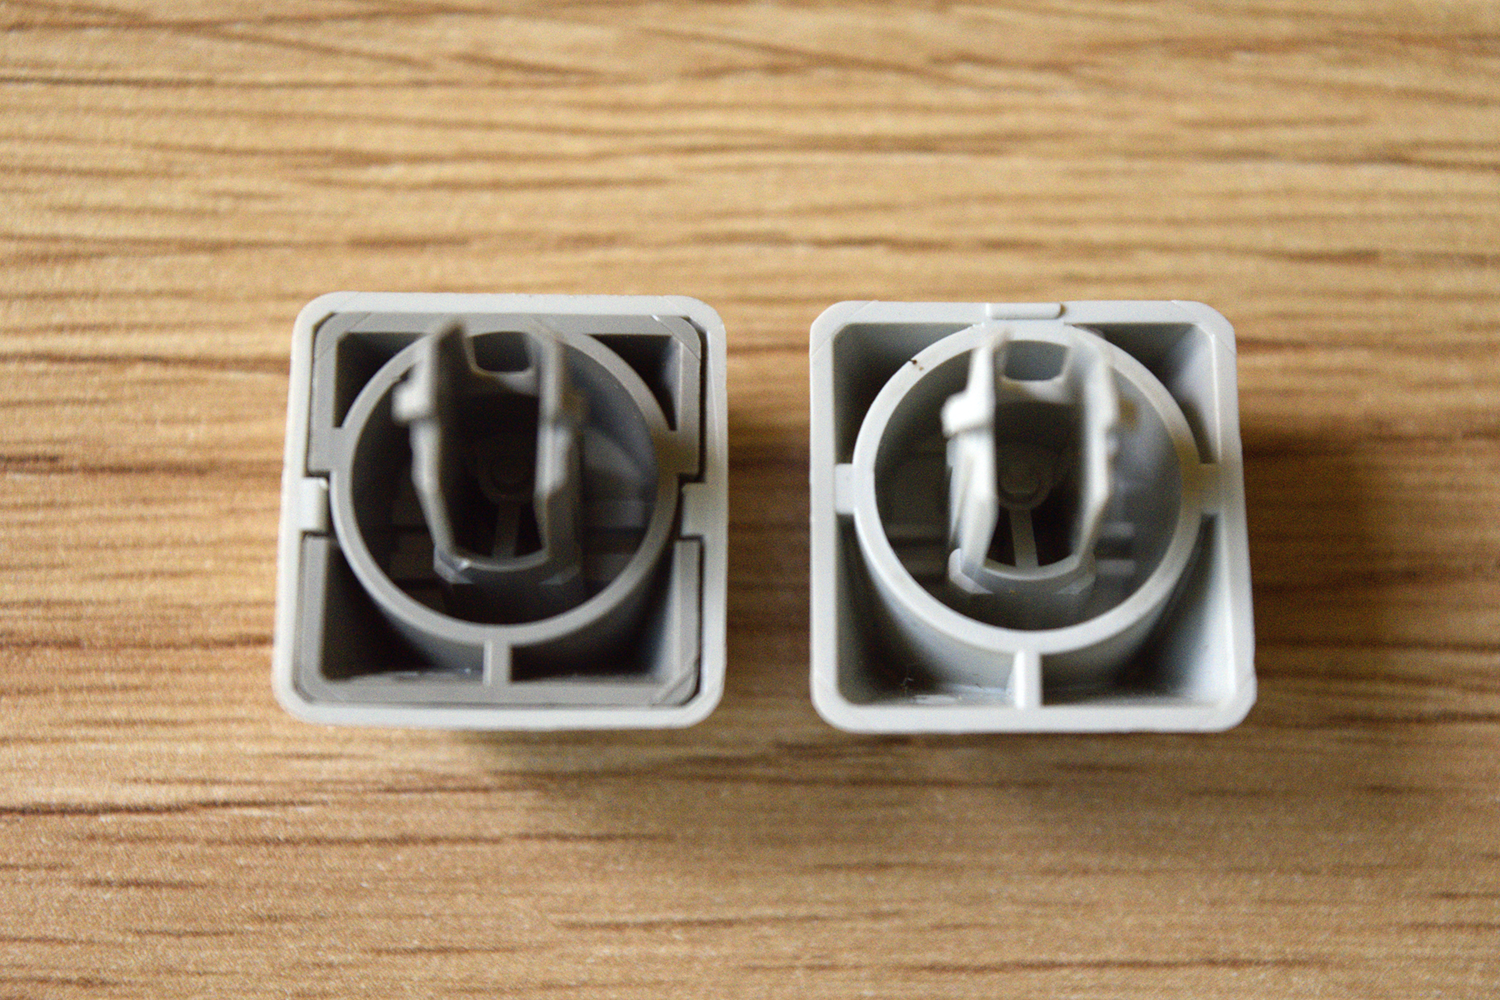 IBM 95 -- Comparison of key bottoms (Left to right): IBM Model M 1390120, IBM 95.  The sprue for the 95's keycaps is underneath the cap and not on the back.